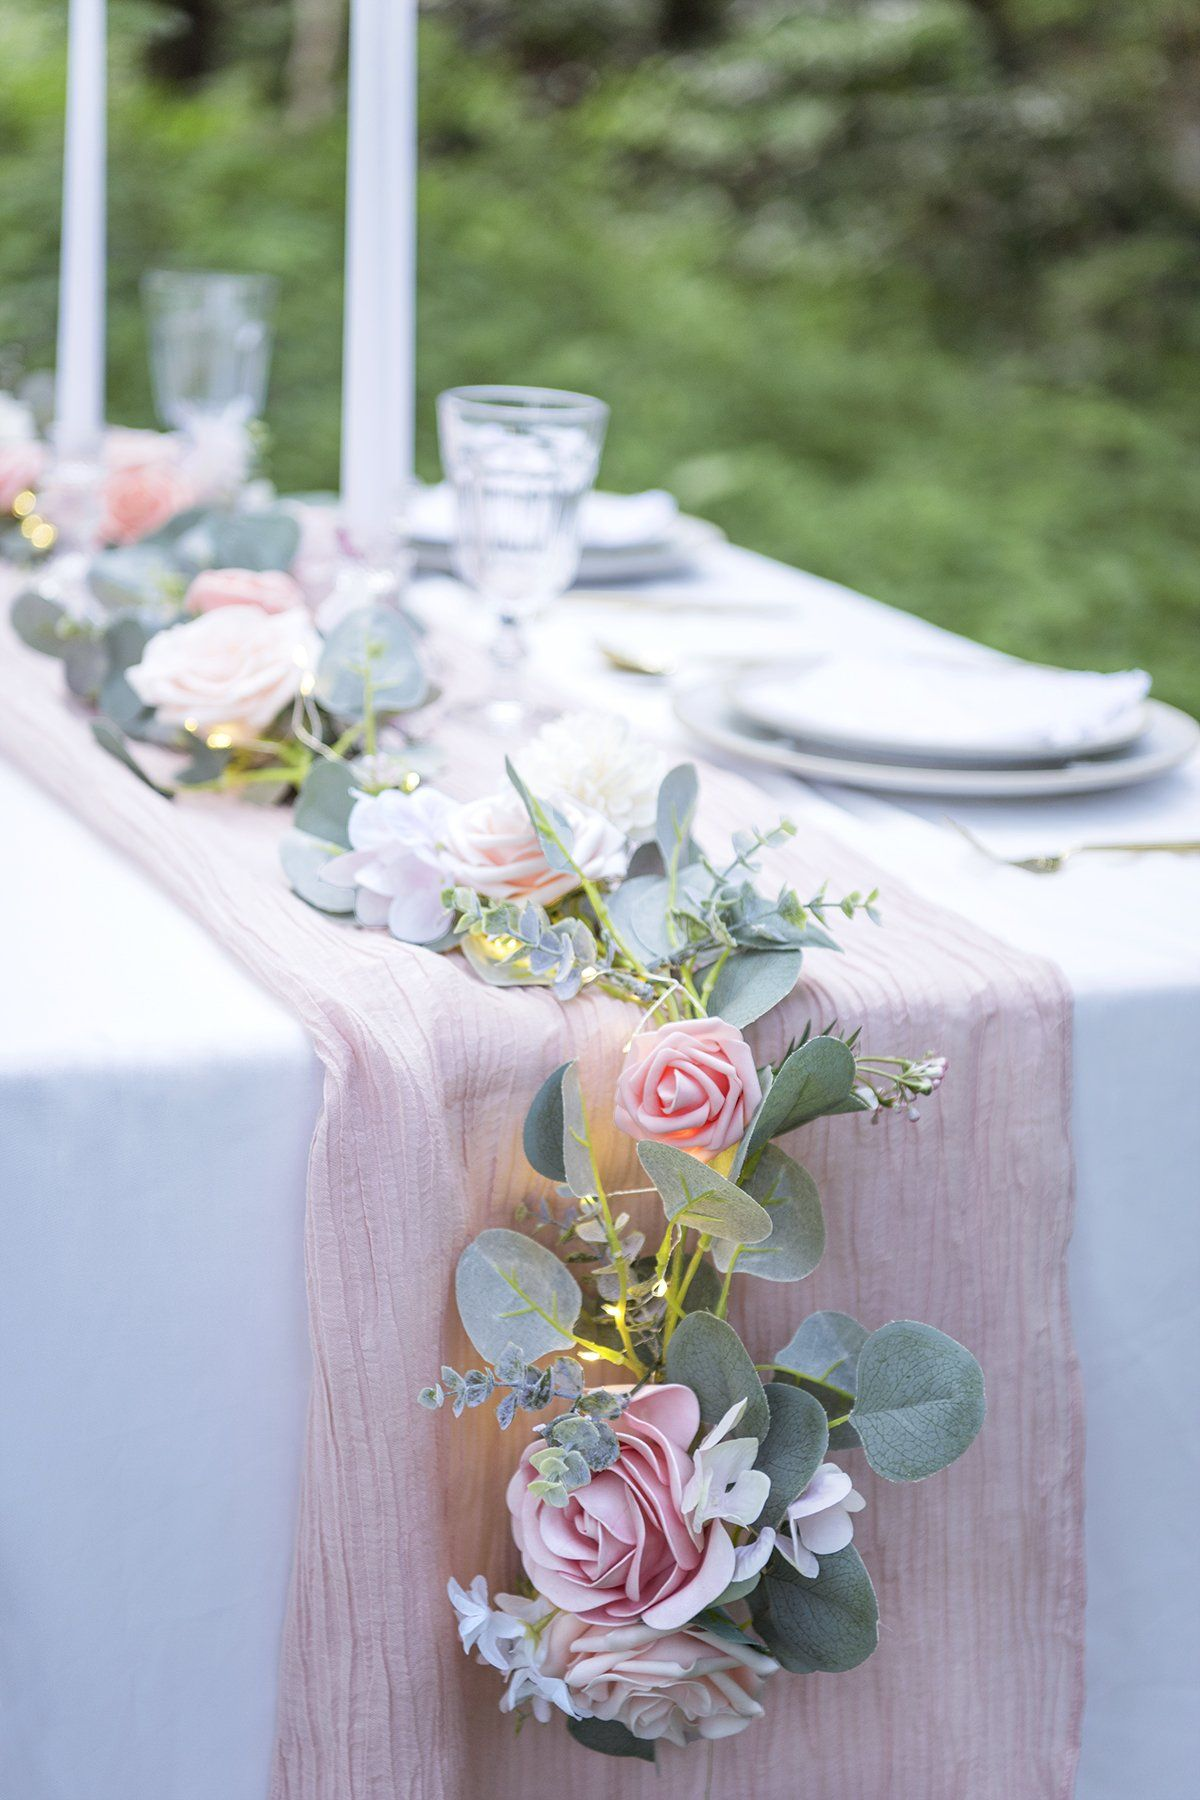 Eucalyptus Flower Garland With Fairy Lights 6 5ft Blush Pink In 2020 Bridal Shower Decorations Wedding Table Flower Decorations